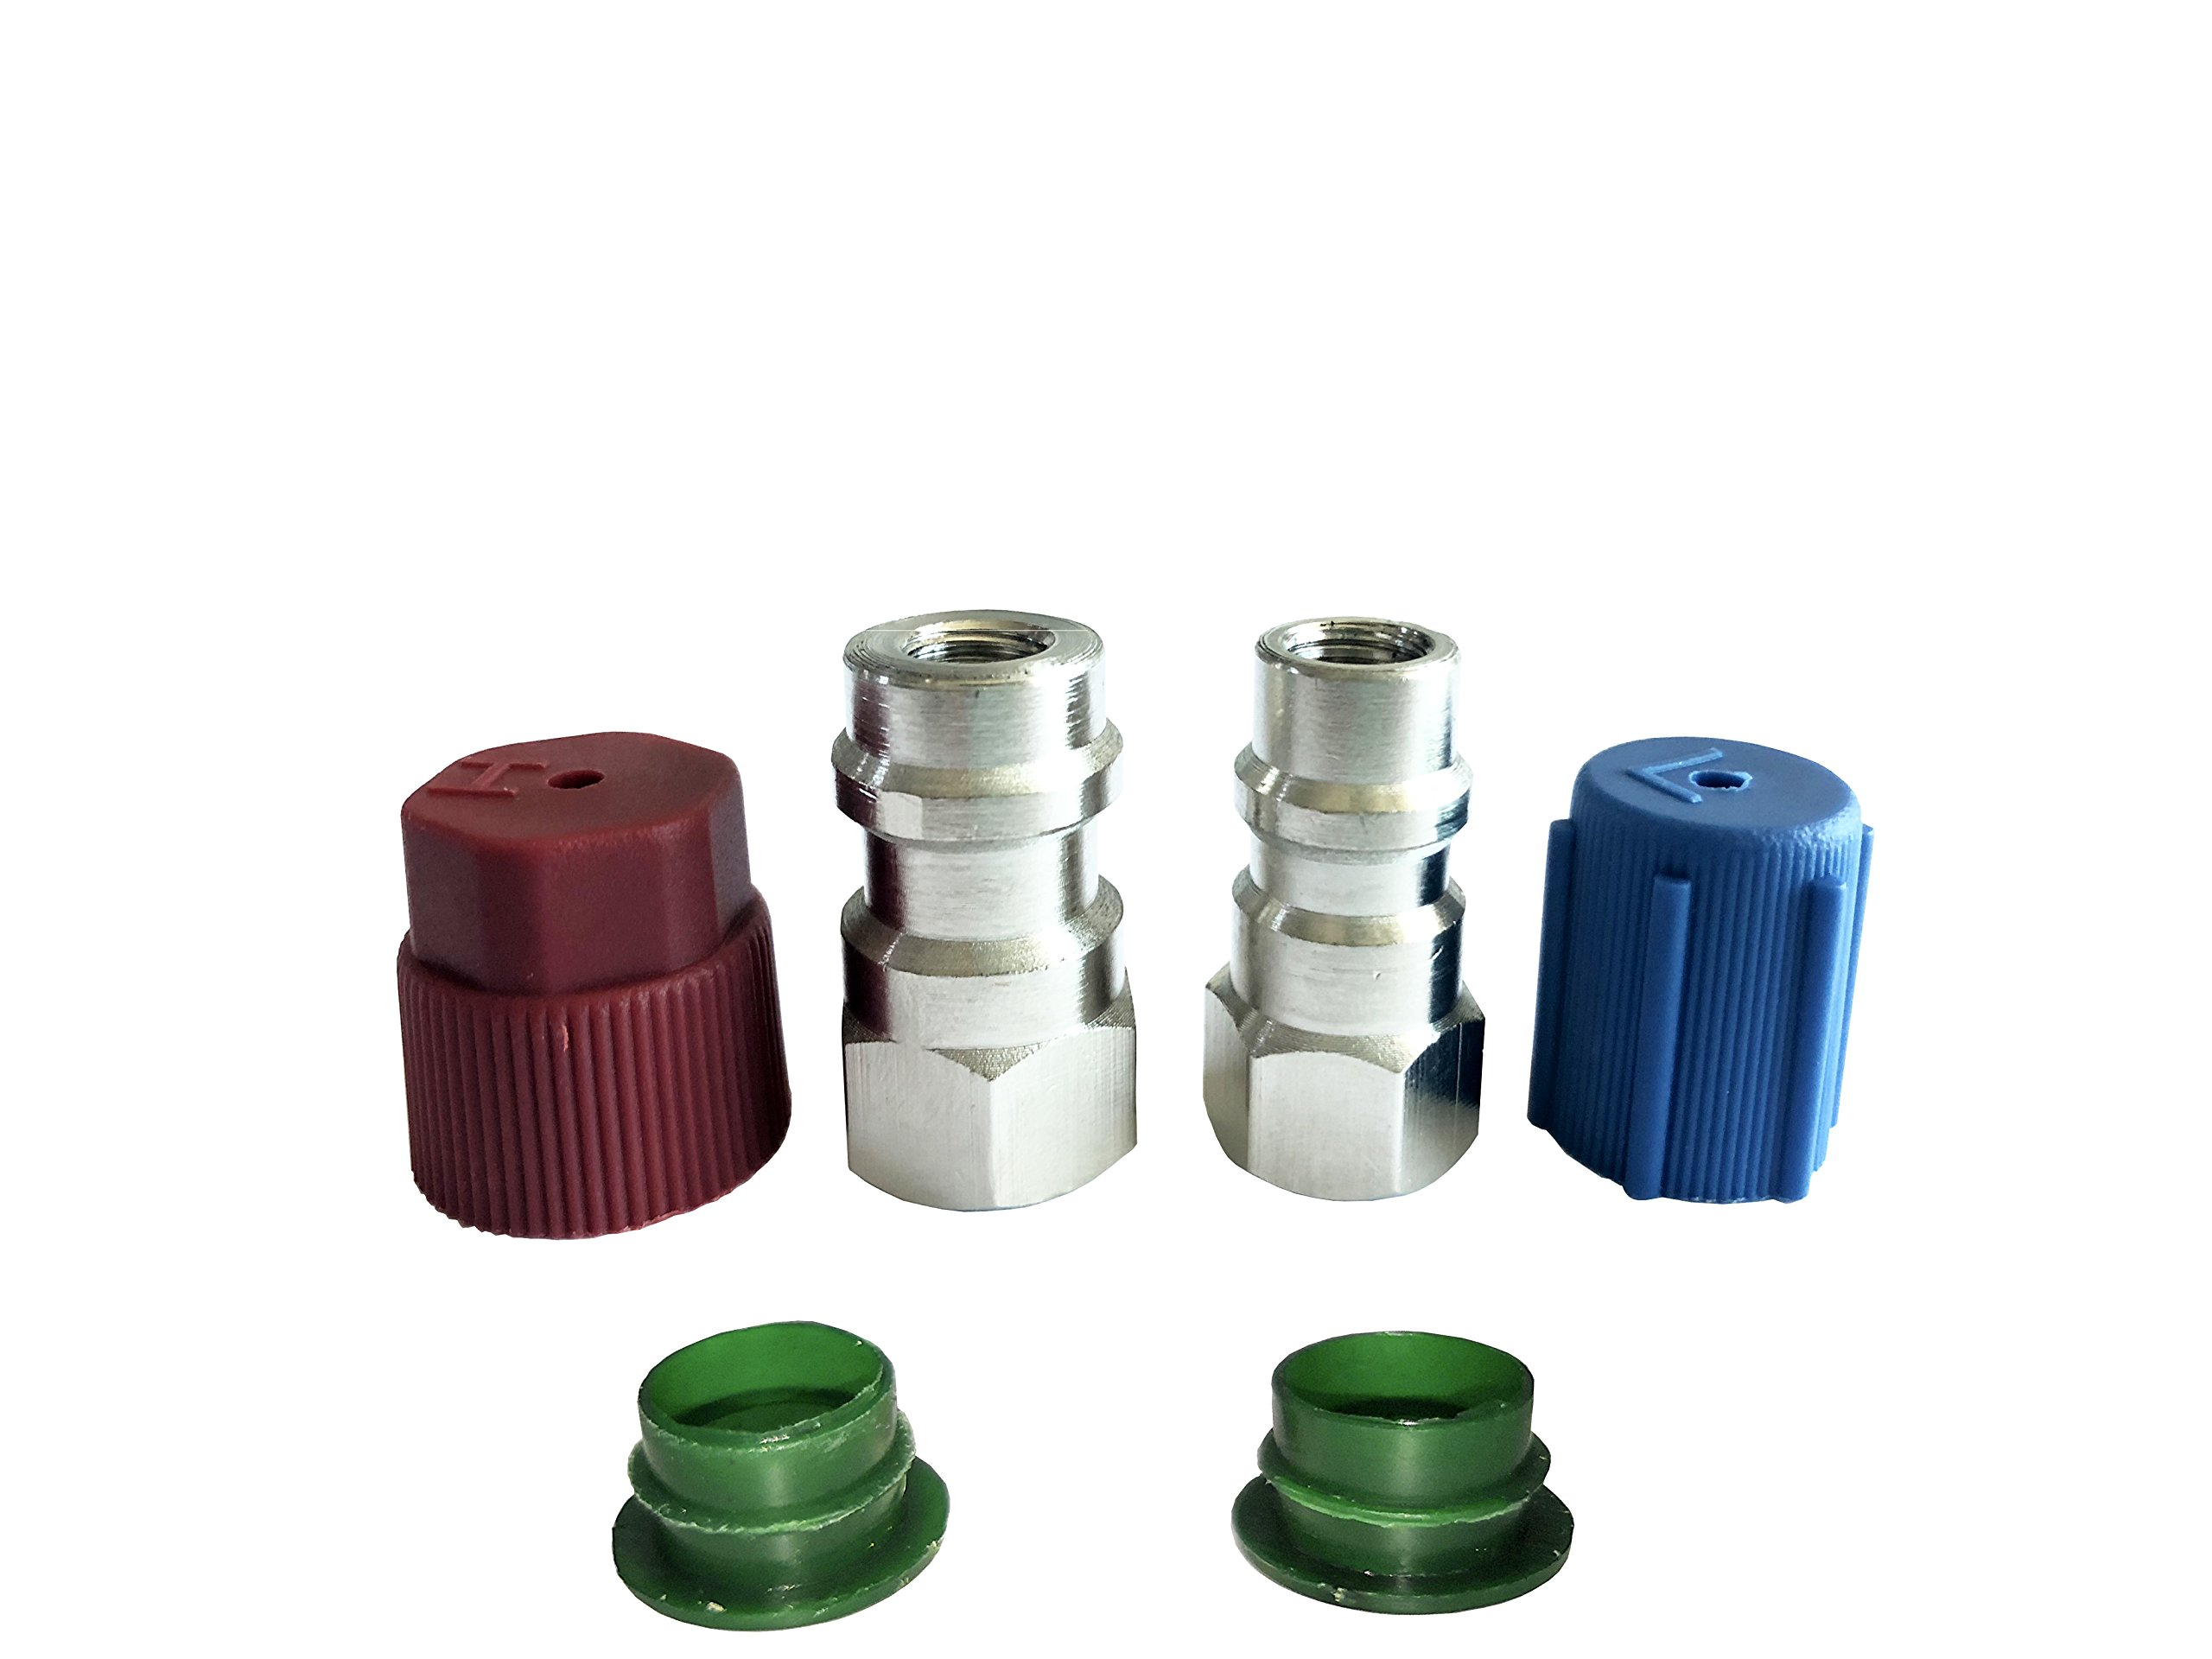 GooMeng4S R-12 to R-134a Retrofit Conversion Adapter Fitting 1/4 SAE Thread,R12 to R134a High/Low AC Fitting